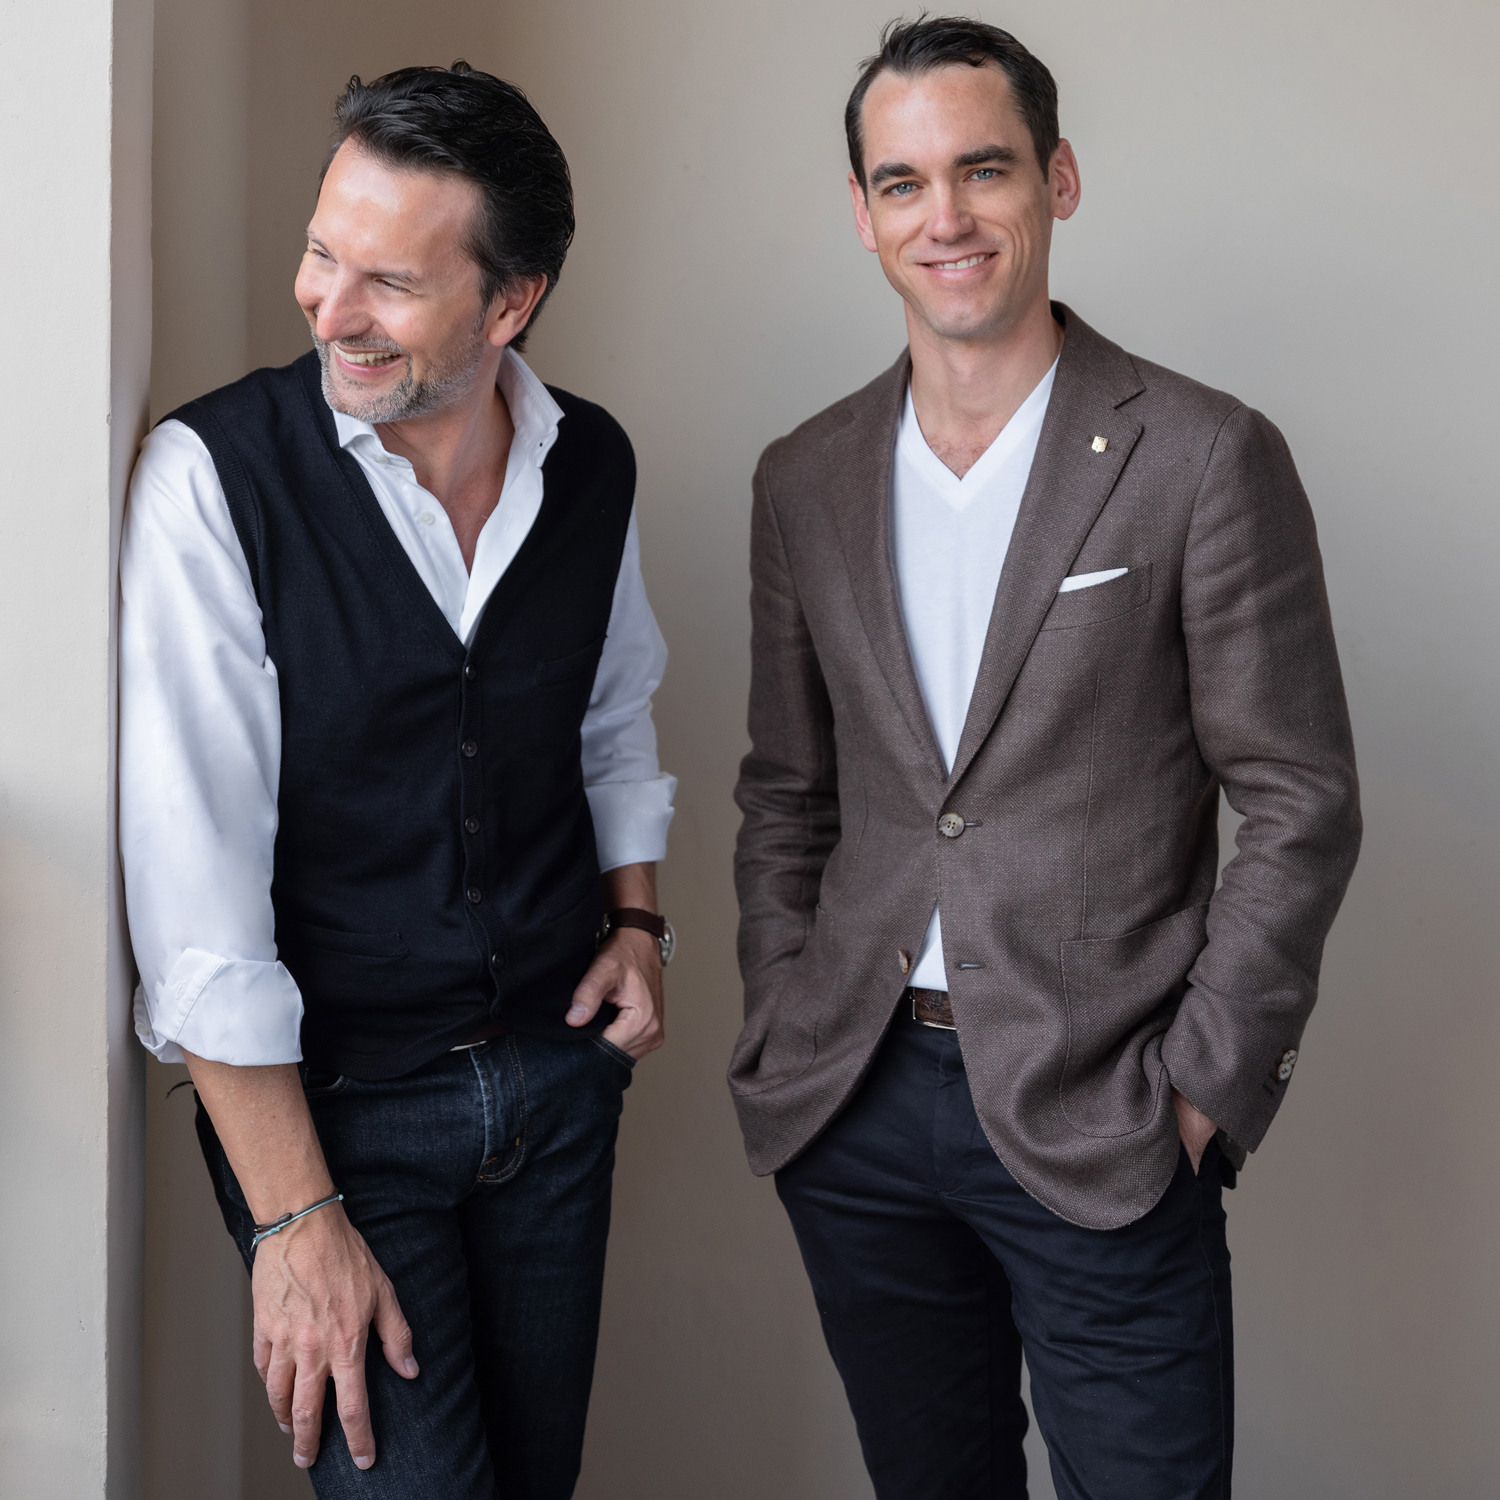 Max Büsser founder of MB&F and Edouard Meylan, CEO of H. Moser & Cie., both found their individual independent brands 15 years ago; long time friends and now finally collaborators